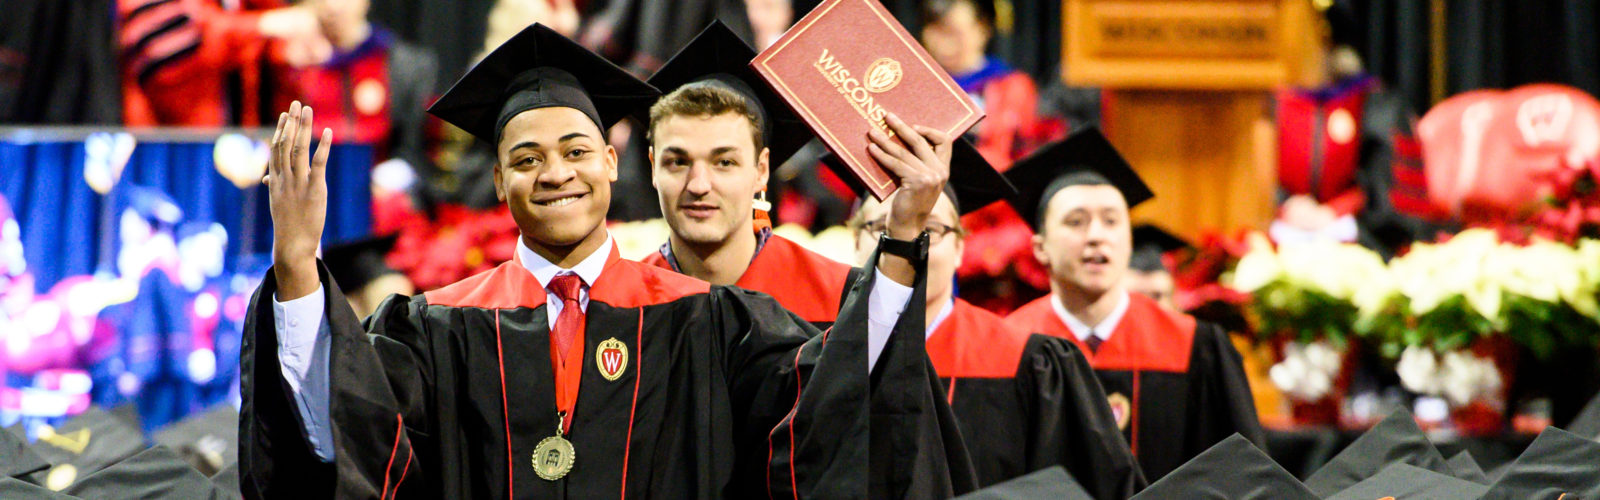 A man wearing a cap, gown and red hood makes a triumphant gesture while walking in line during the winter Commencement ceremony.